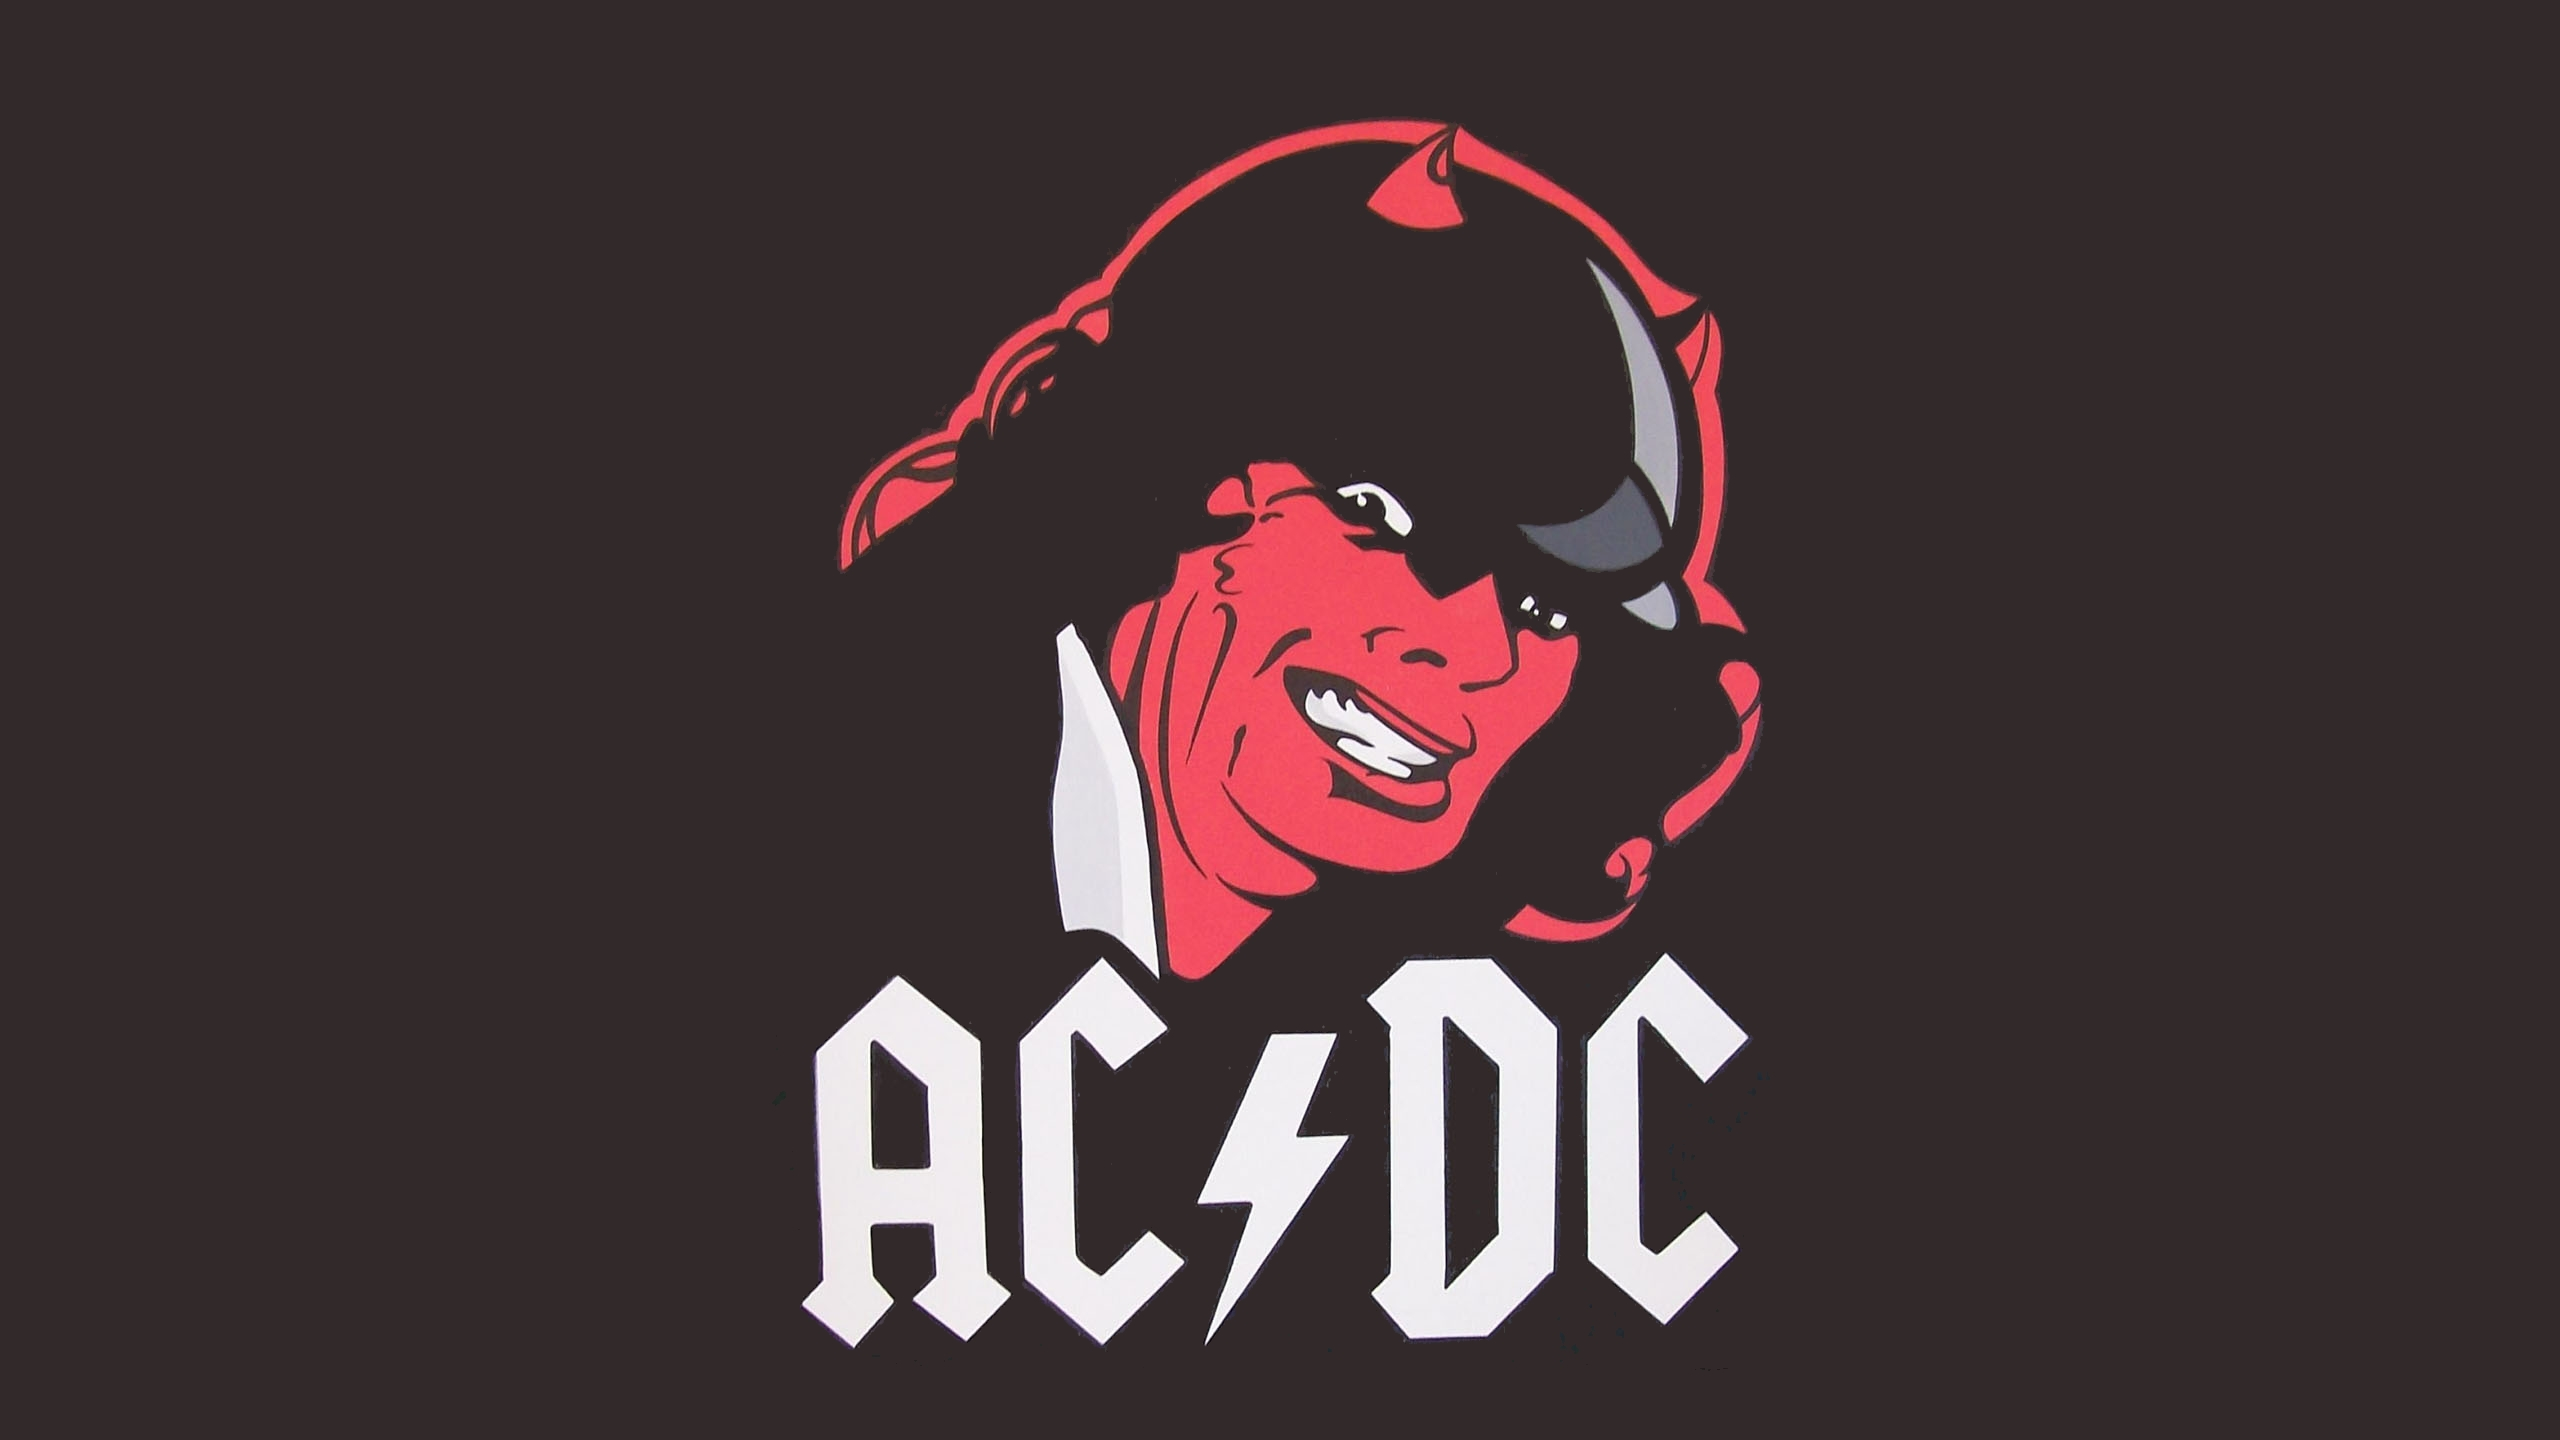 AC/DC Full HD Wallpaper And Background Image